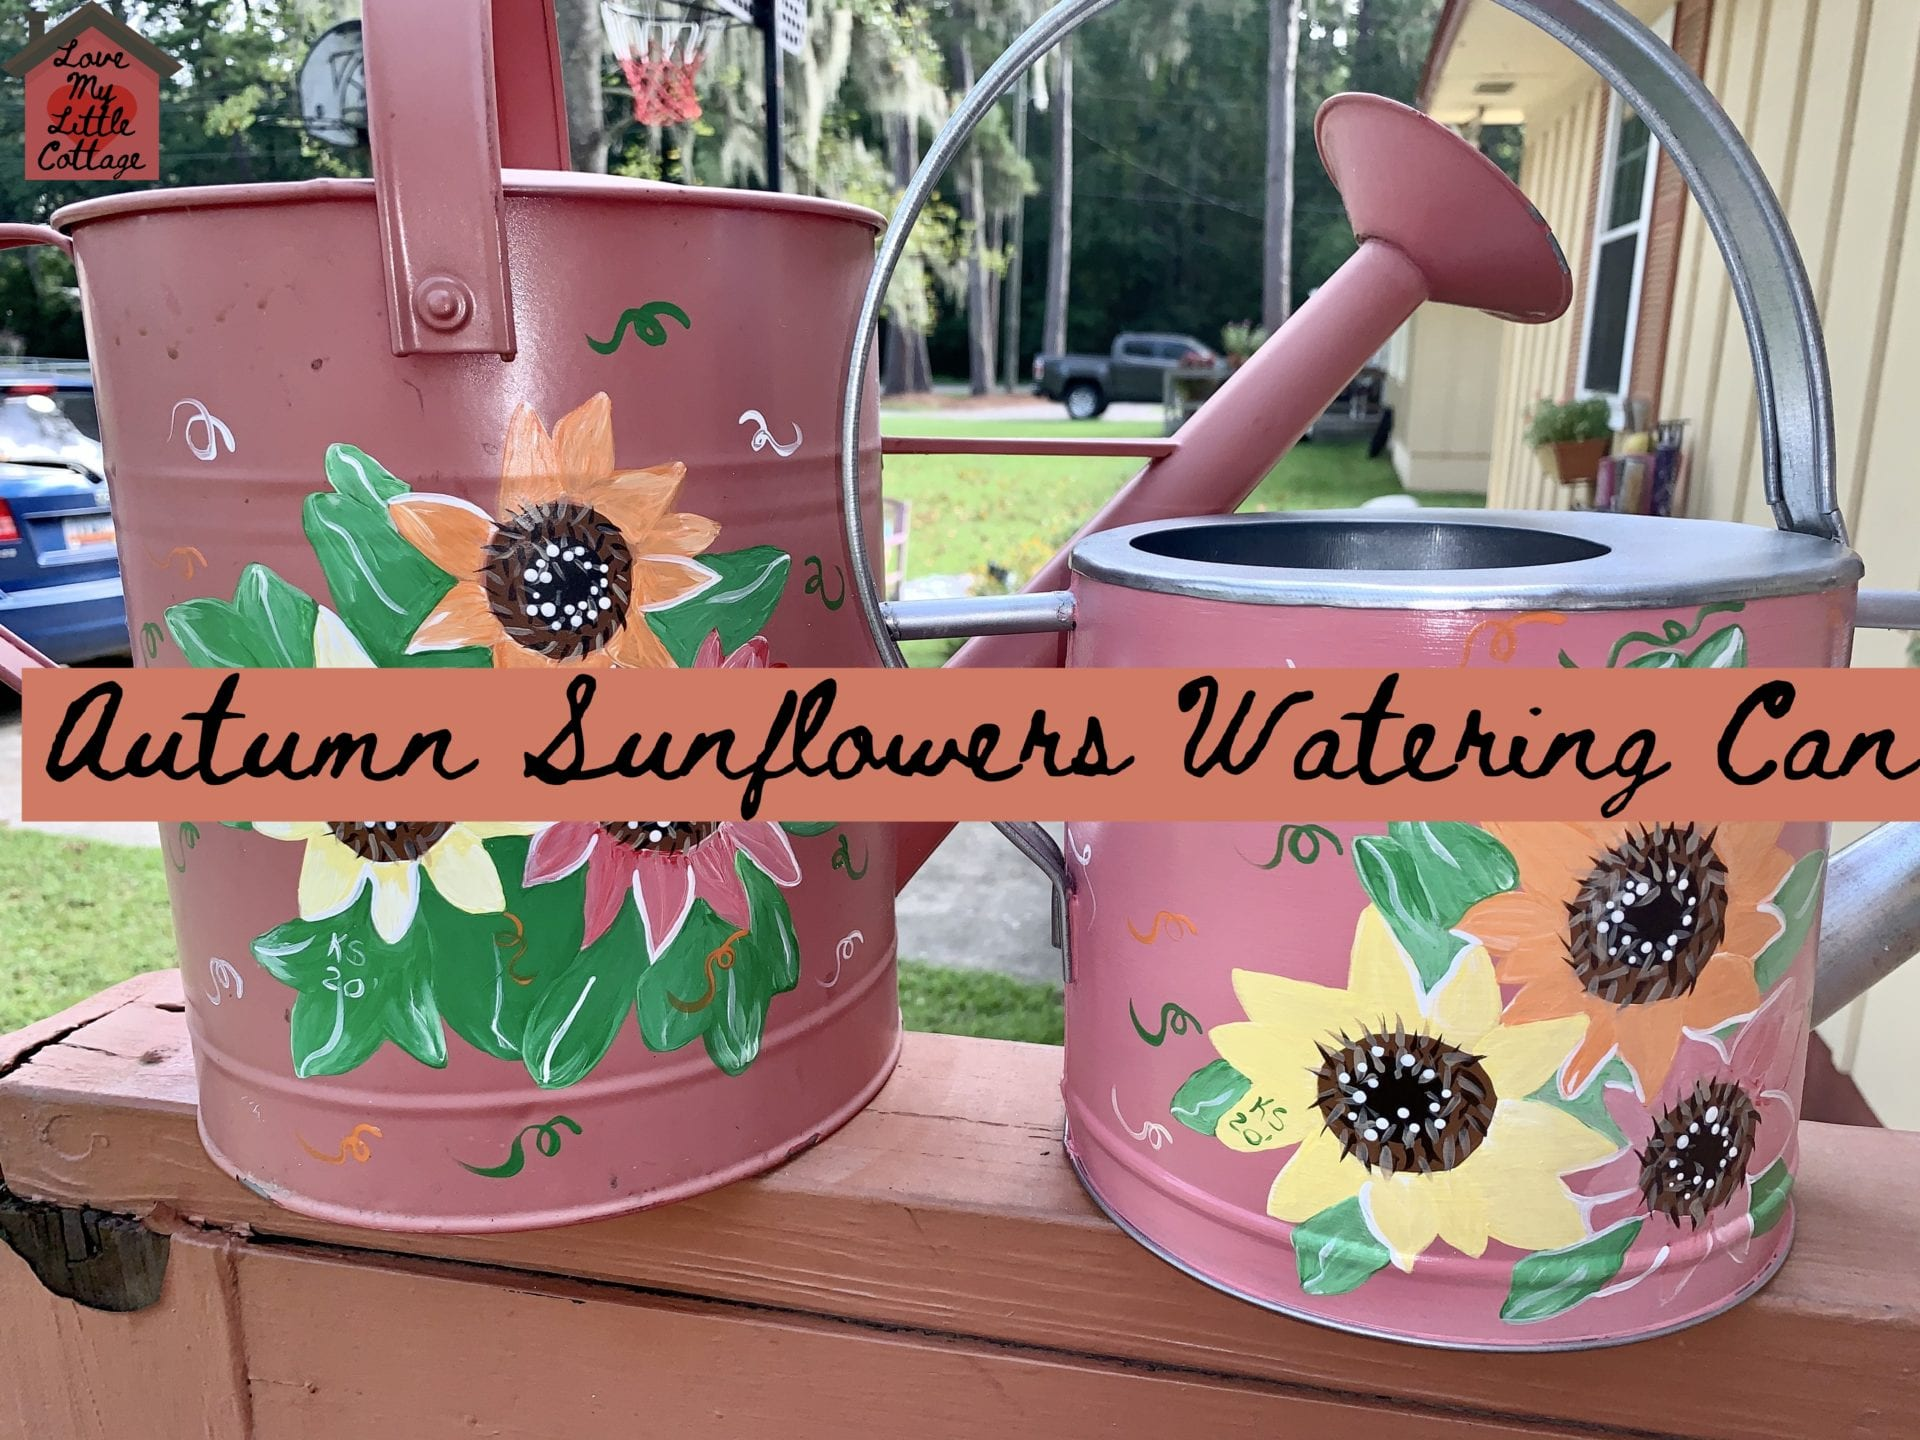 Autumn Sunflower Watering Can